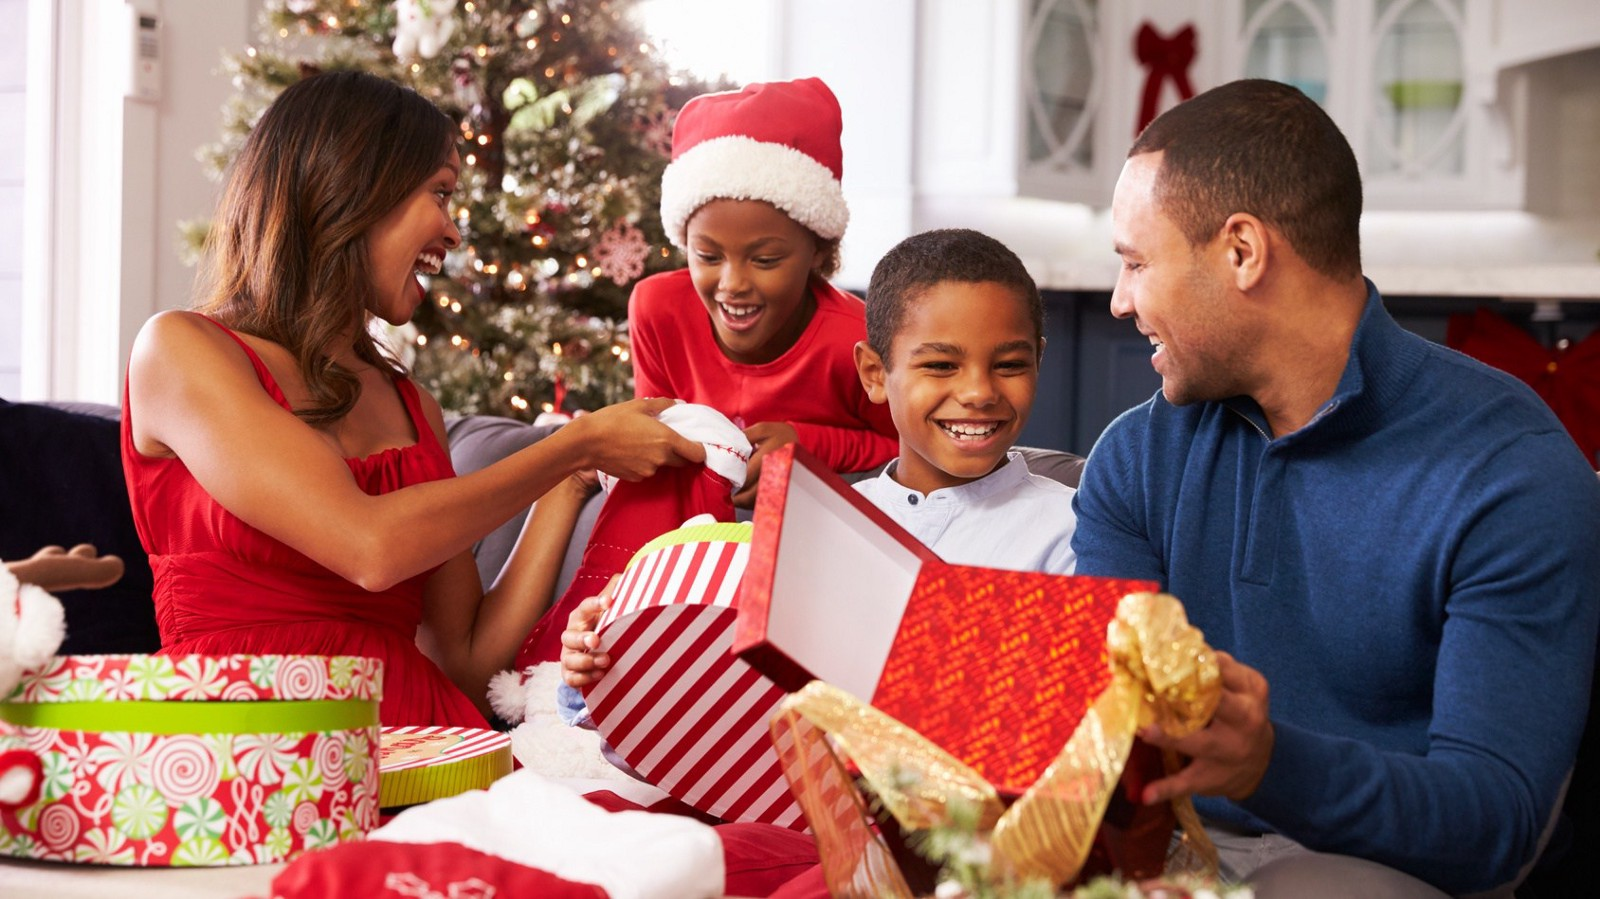 How to Help People During the Holidays recommend